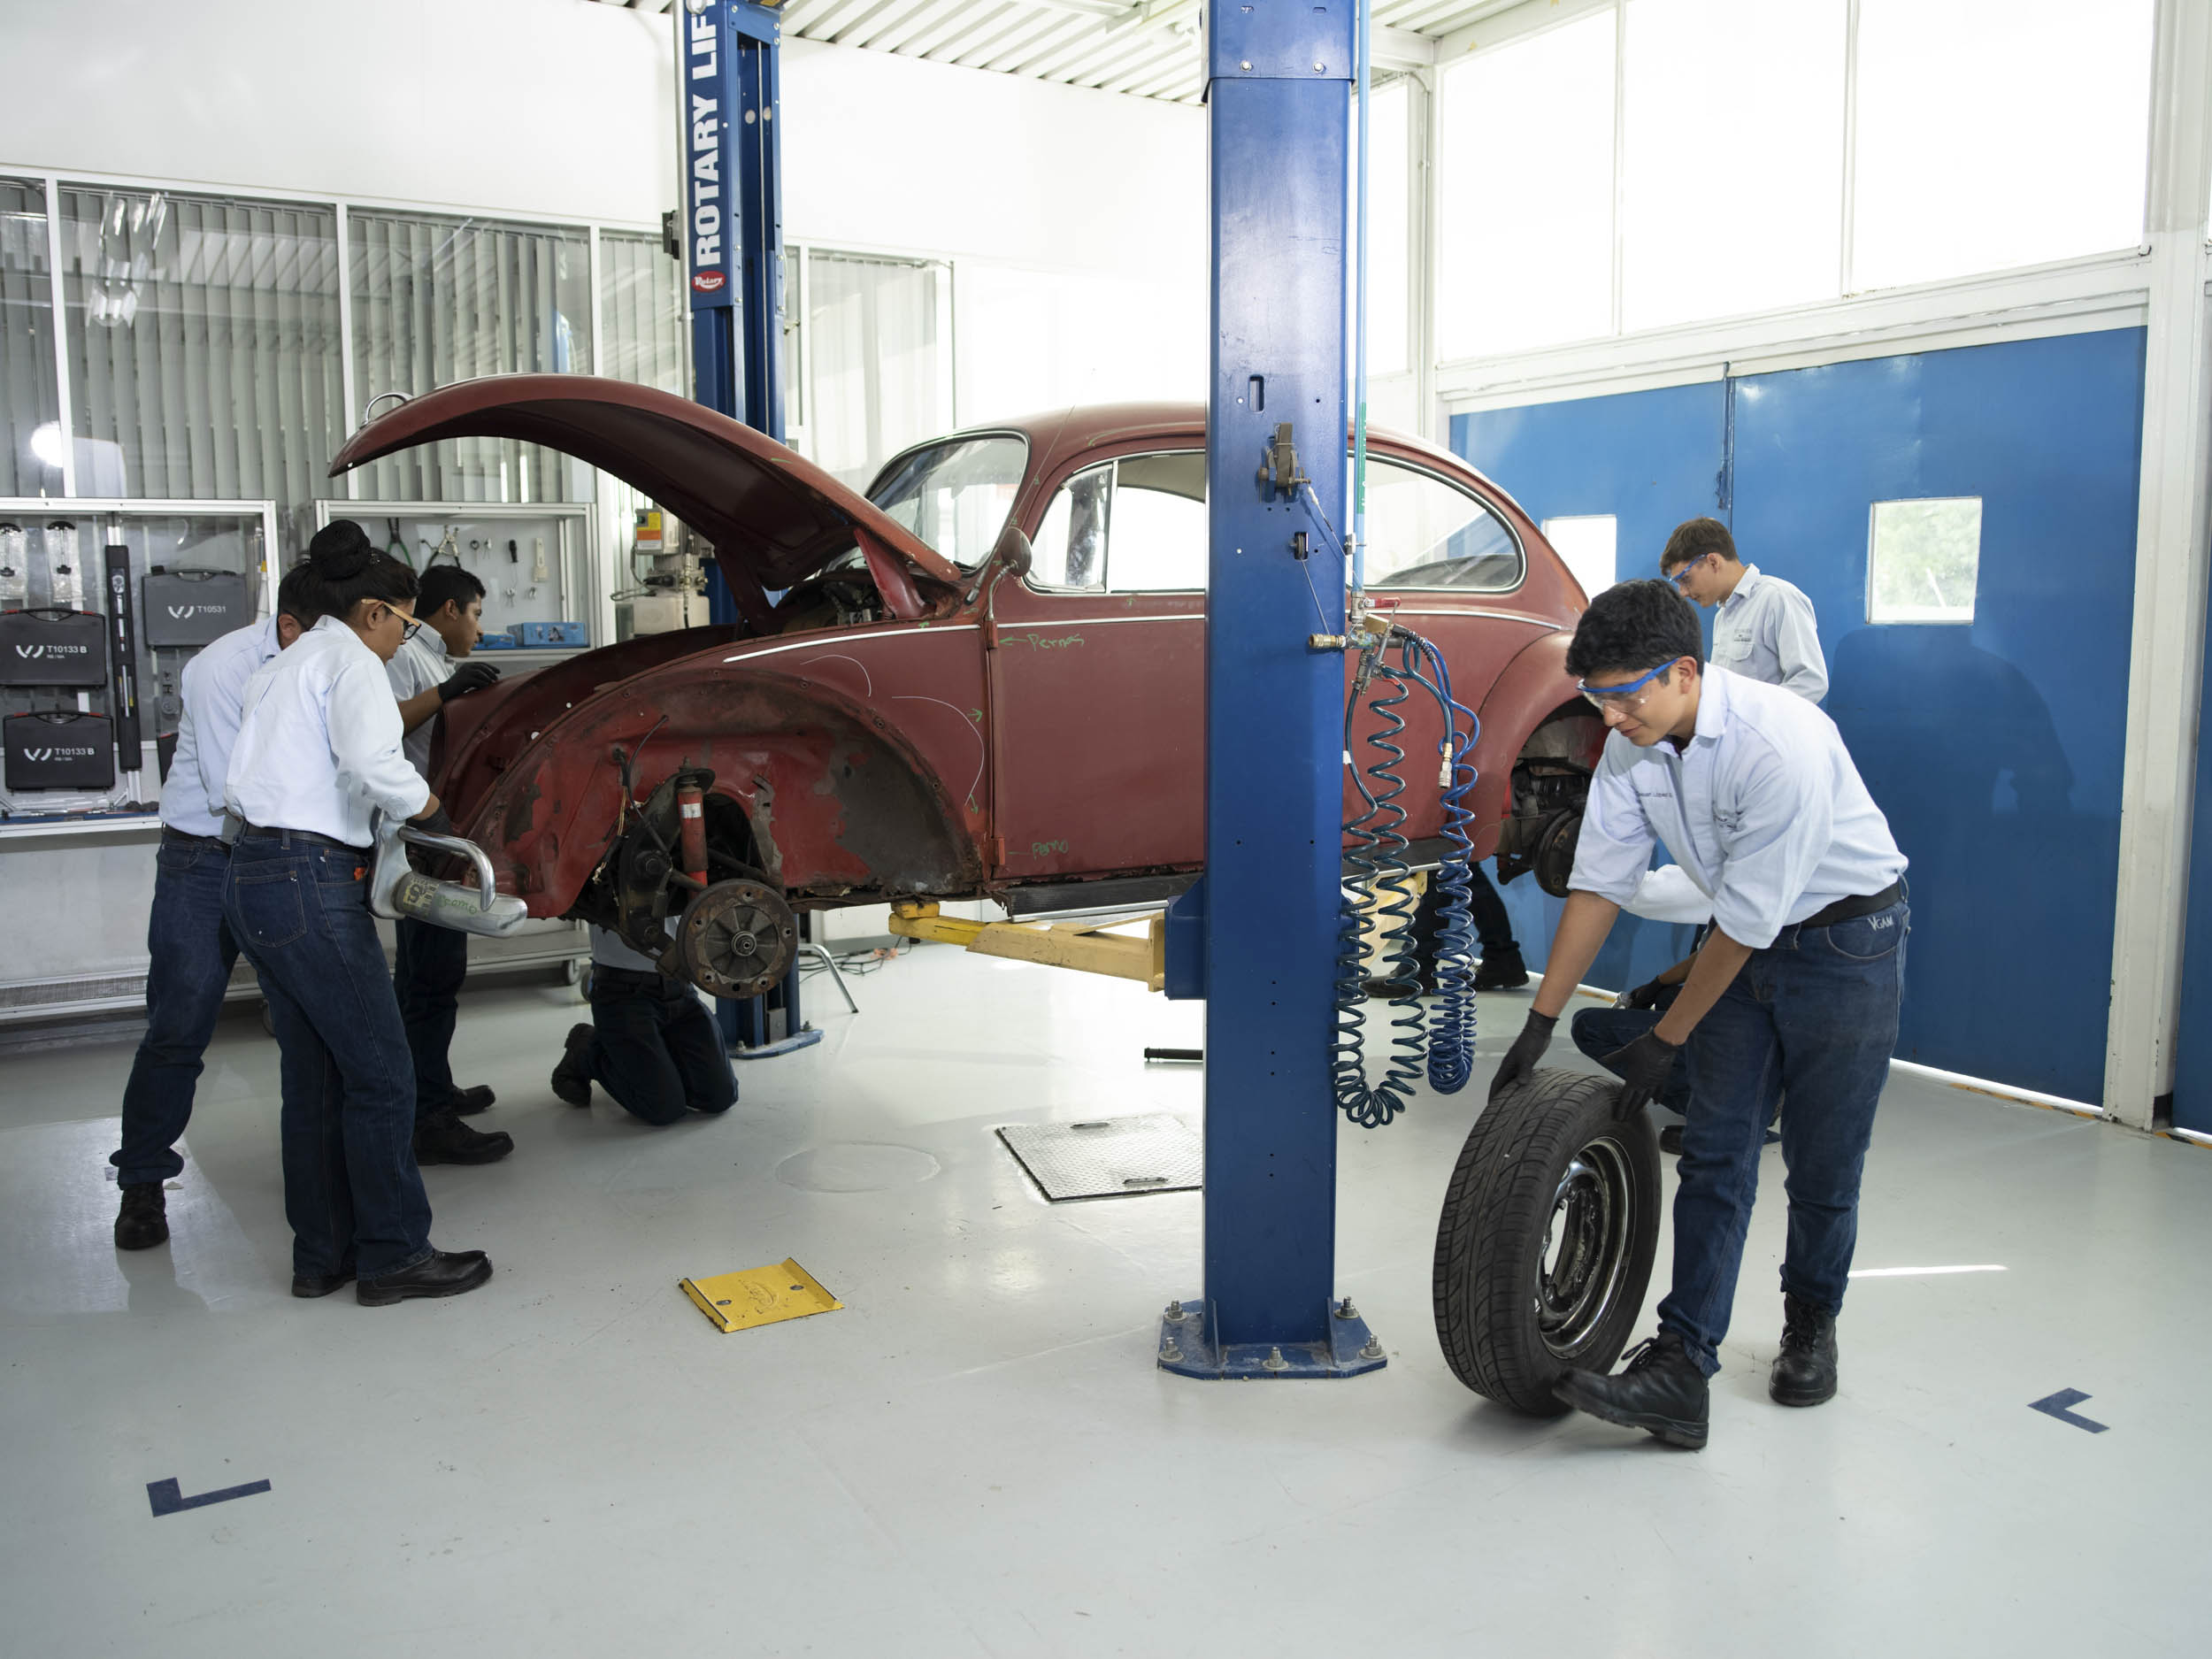 1967 Volkswagen Beetle car disassembly